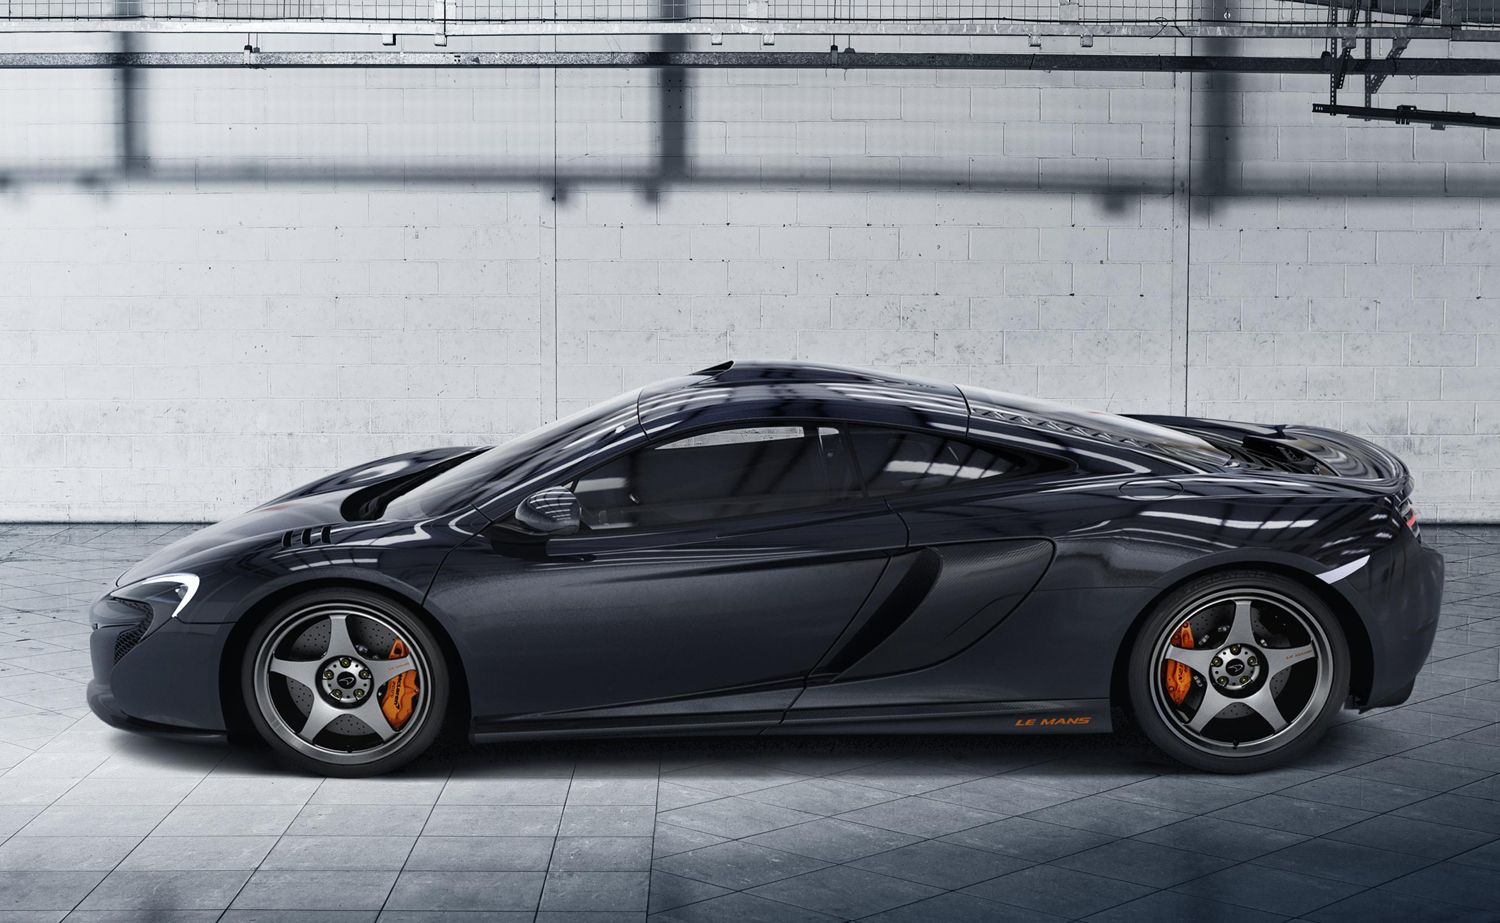 McLaren to Highlight its Personal Touch at Pebble Beach